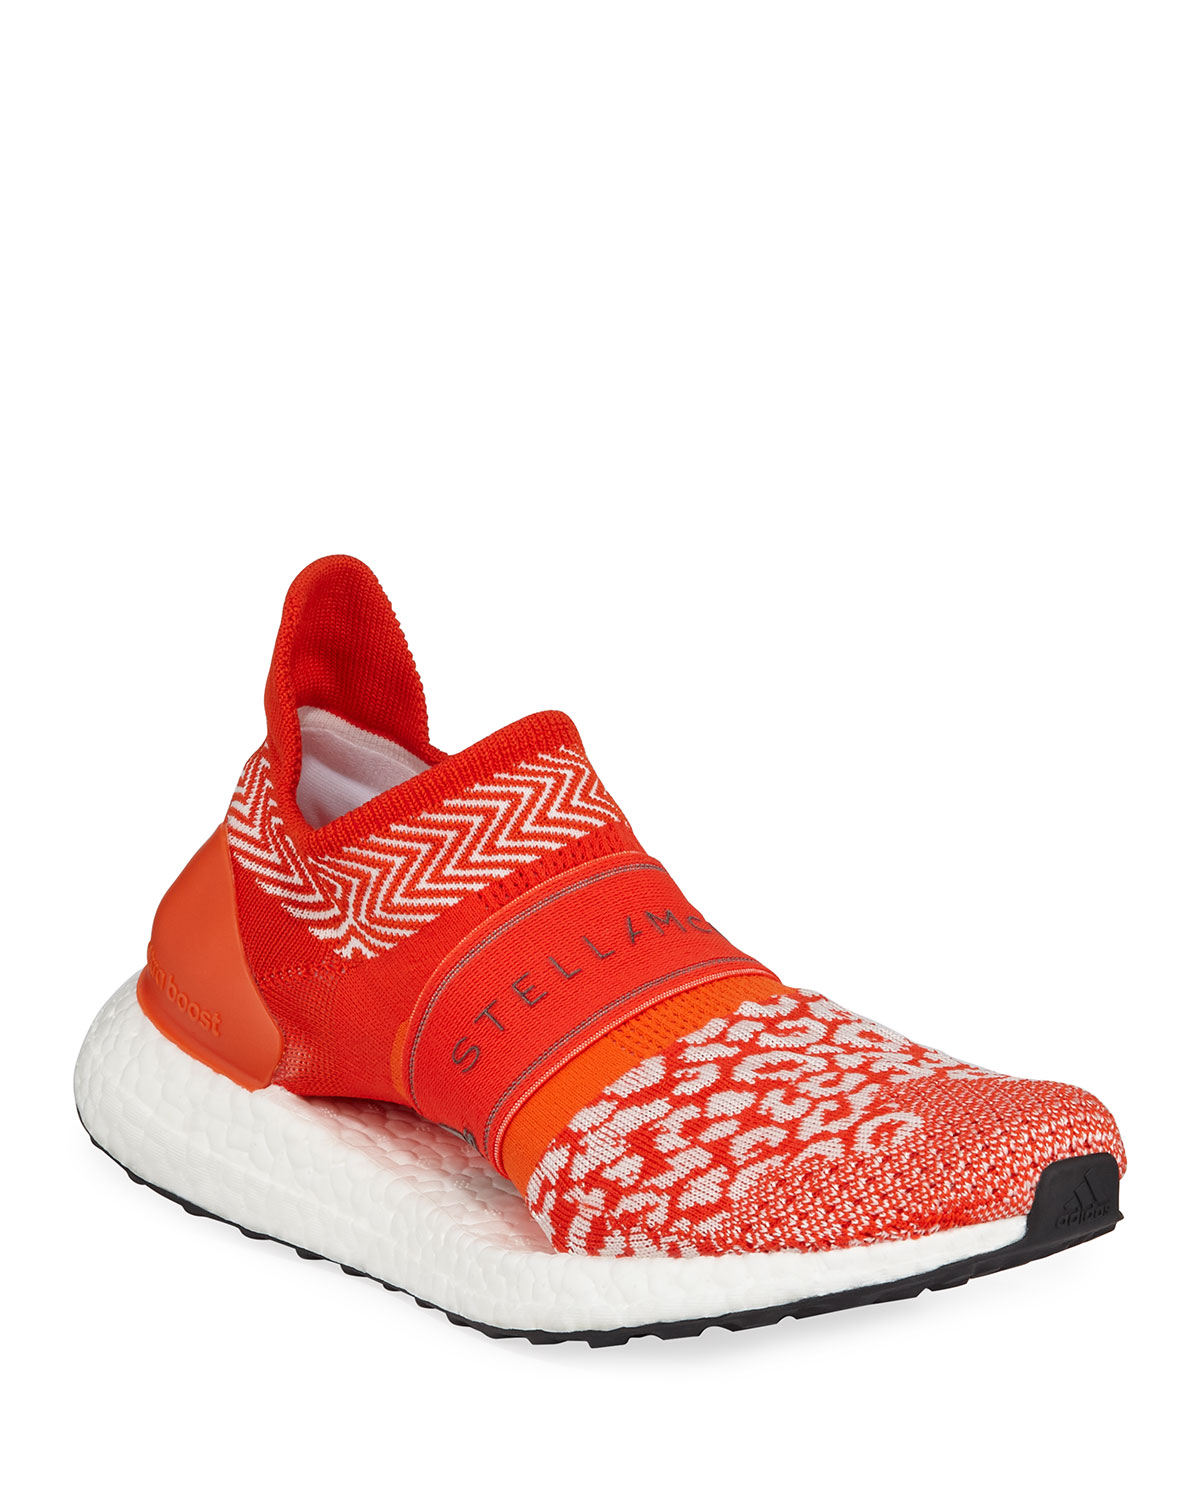 b9f581cb2ac adidas by Stella McCartney UltraBoost X 3D Sneakers